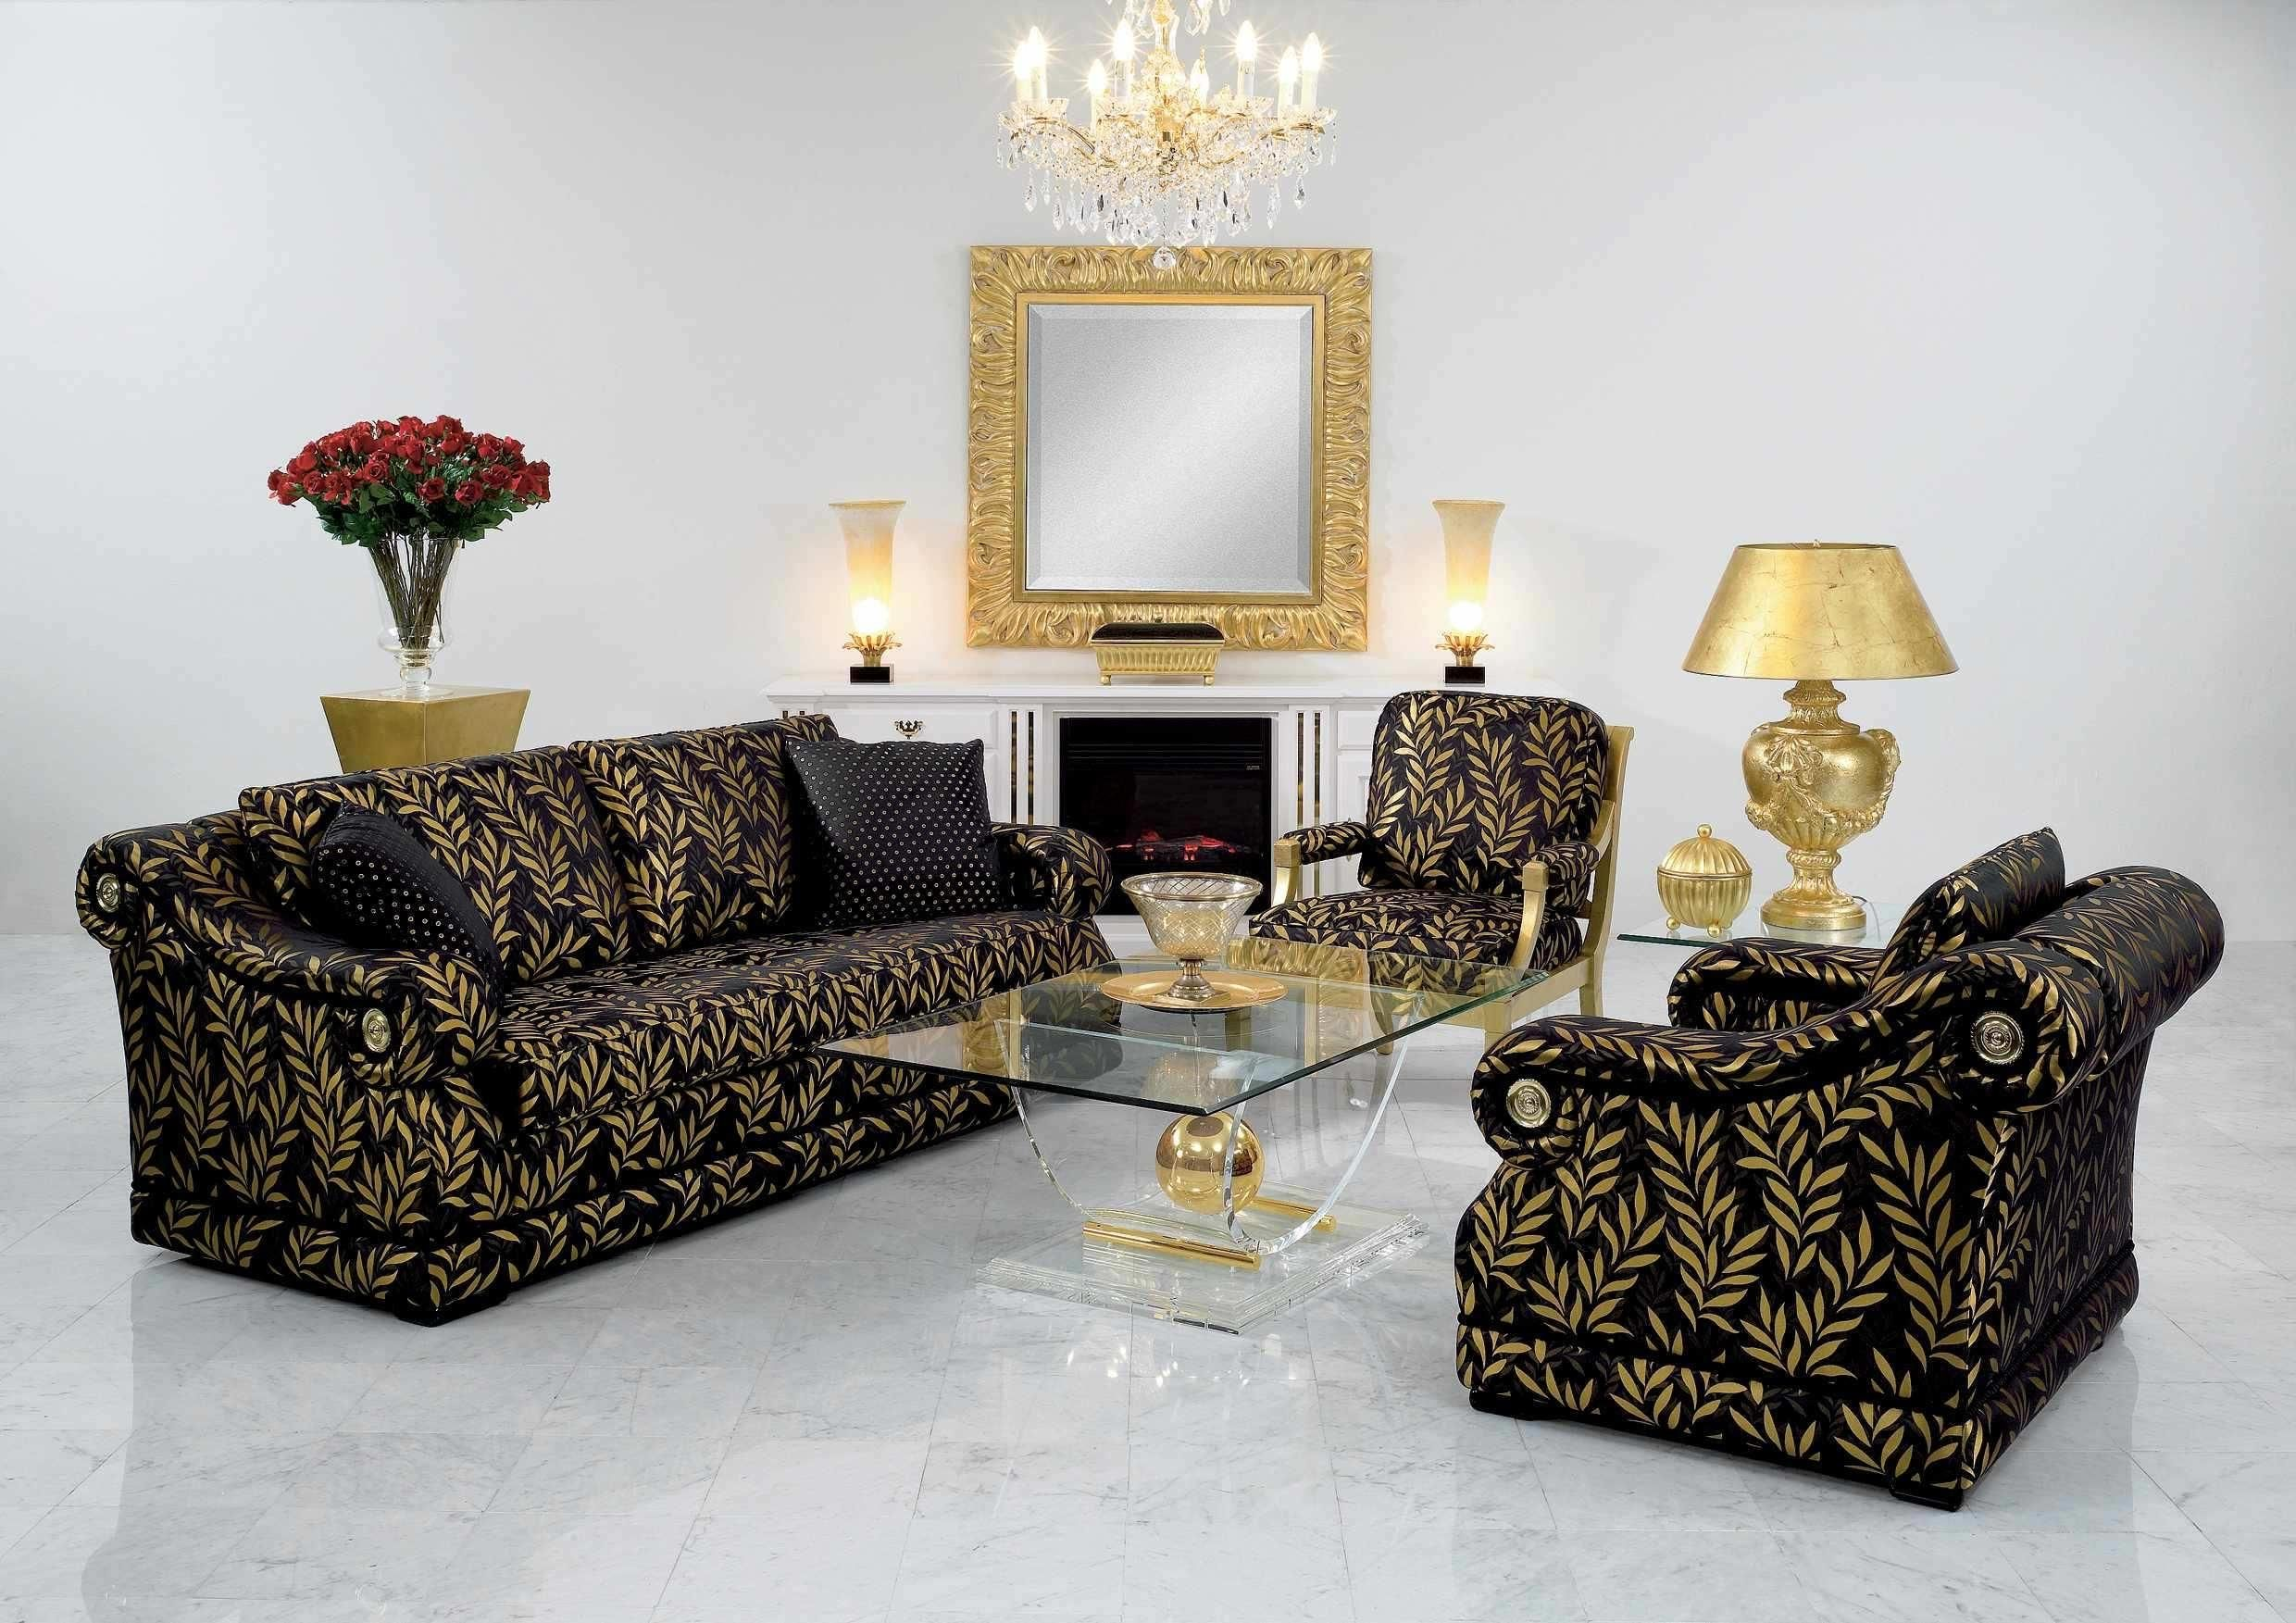 classy living room design with classic black yellow floral sofa